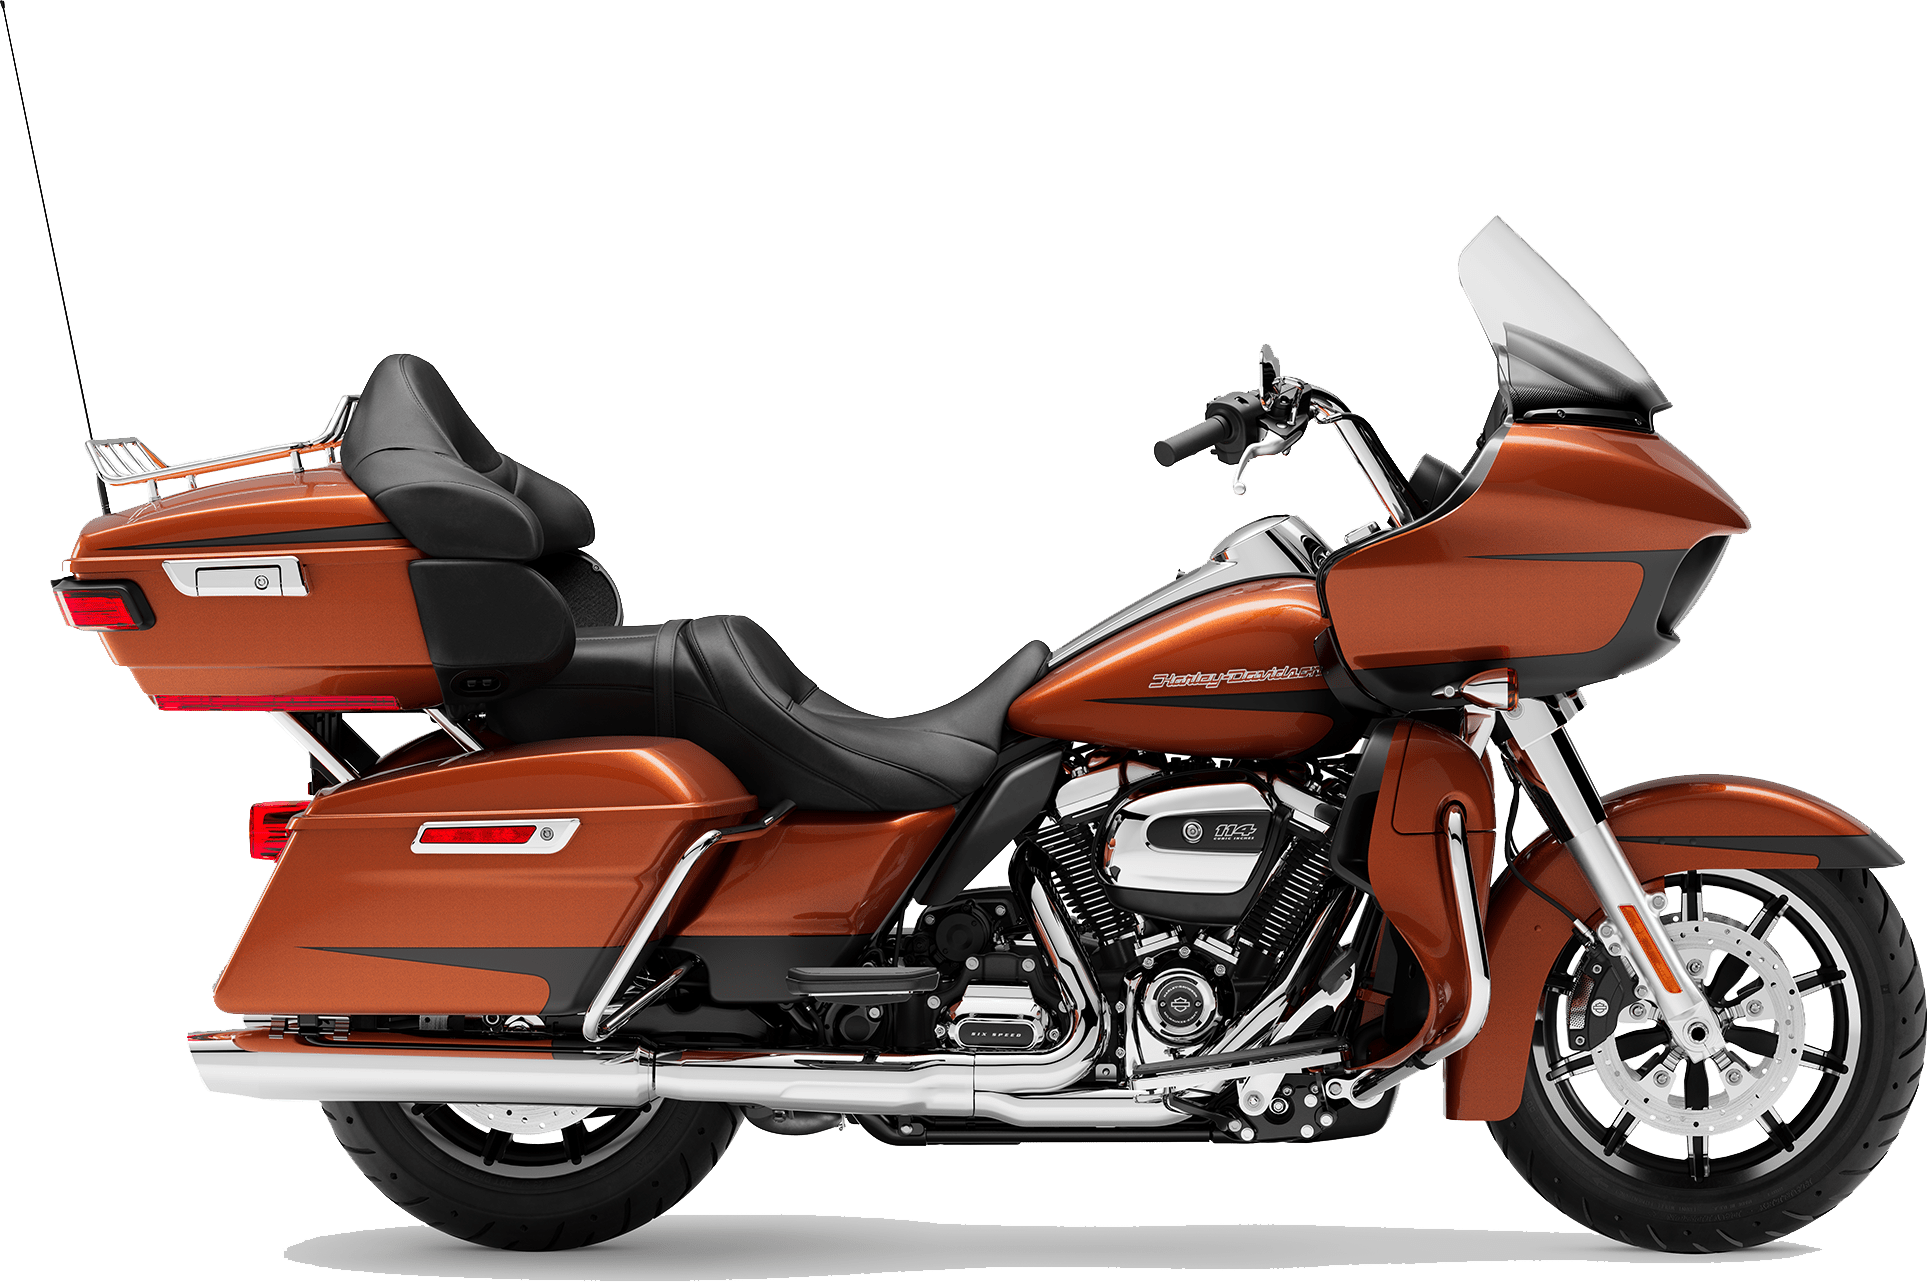 2019 Harley-Davidson H-D Touring Road Glide Ultra Scorched Orange Black Denim